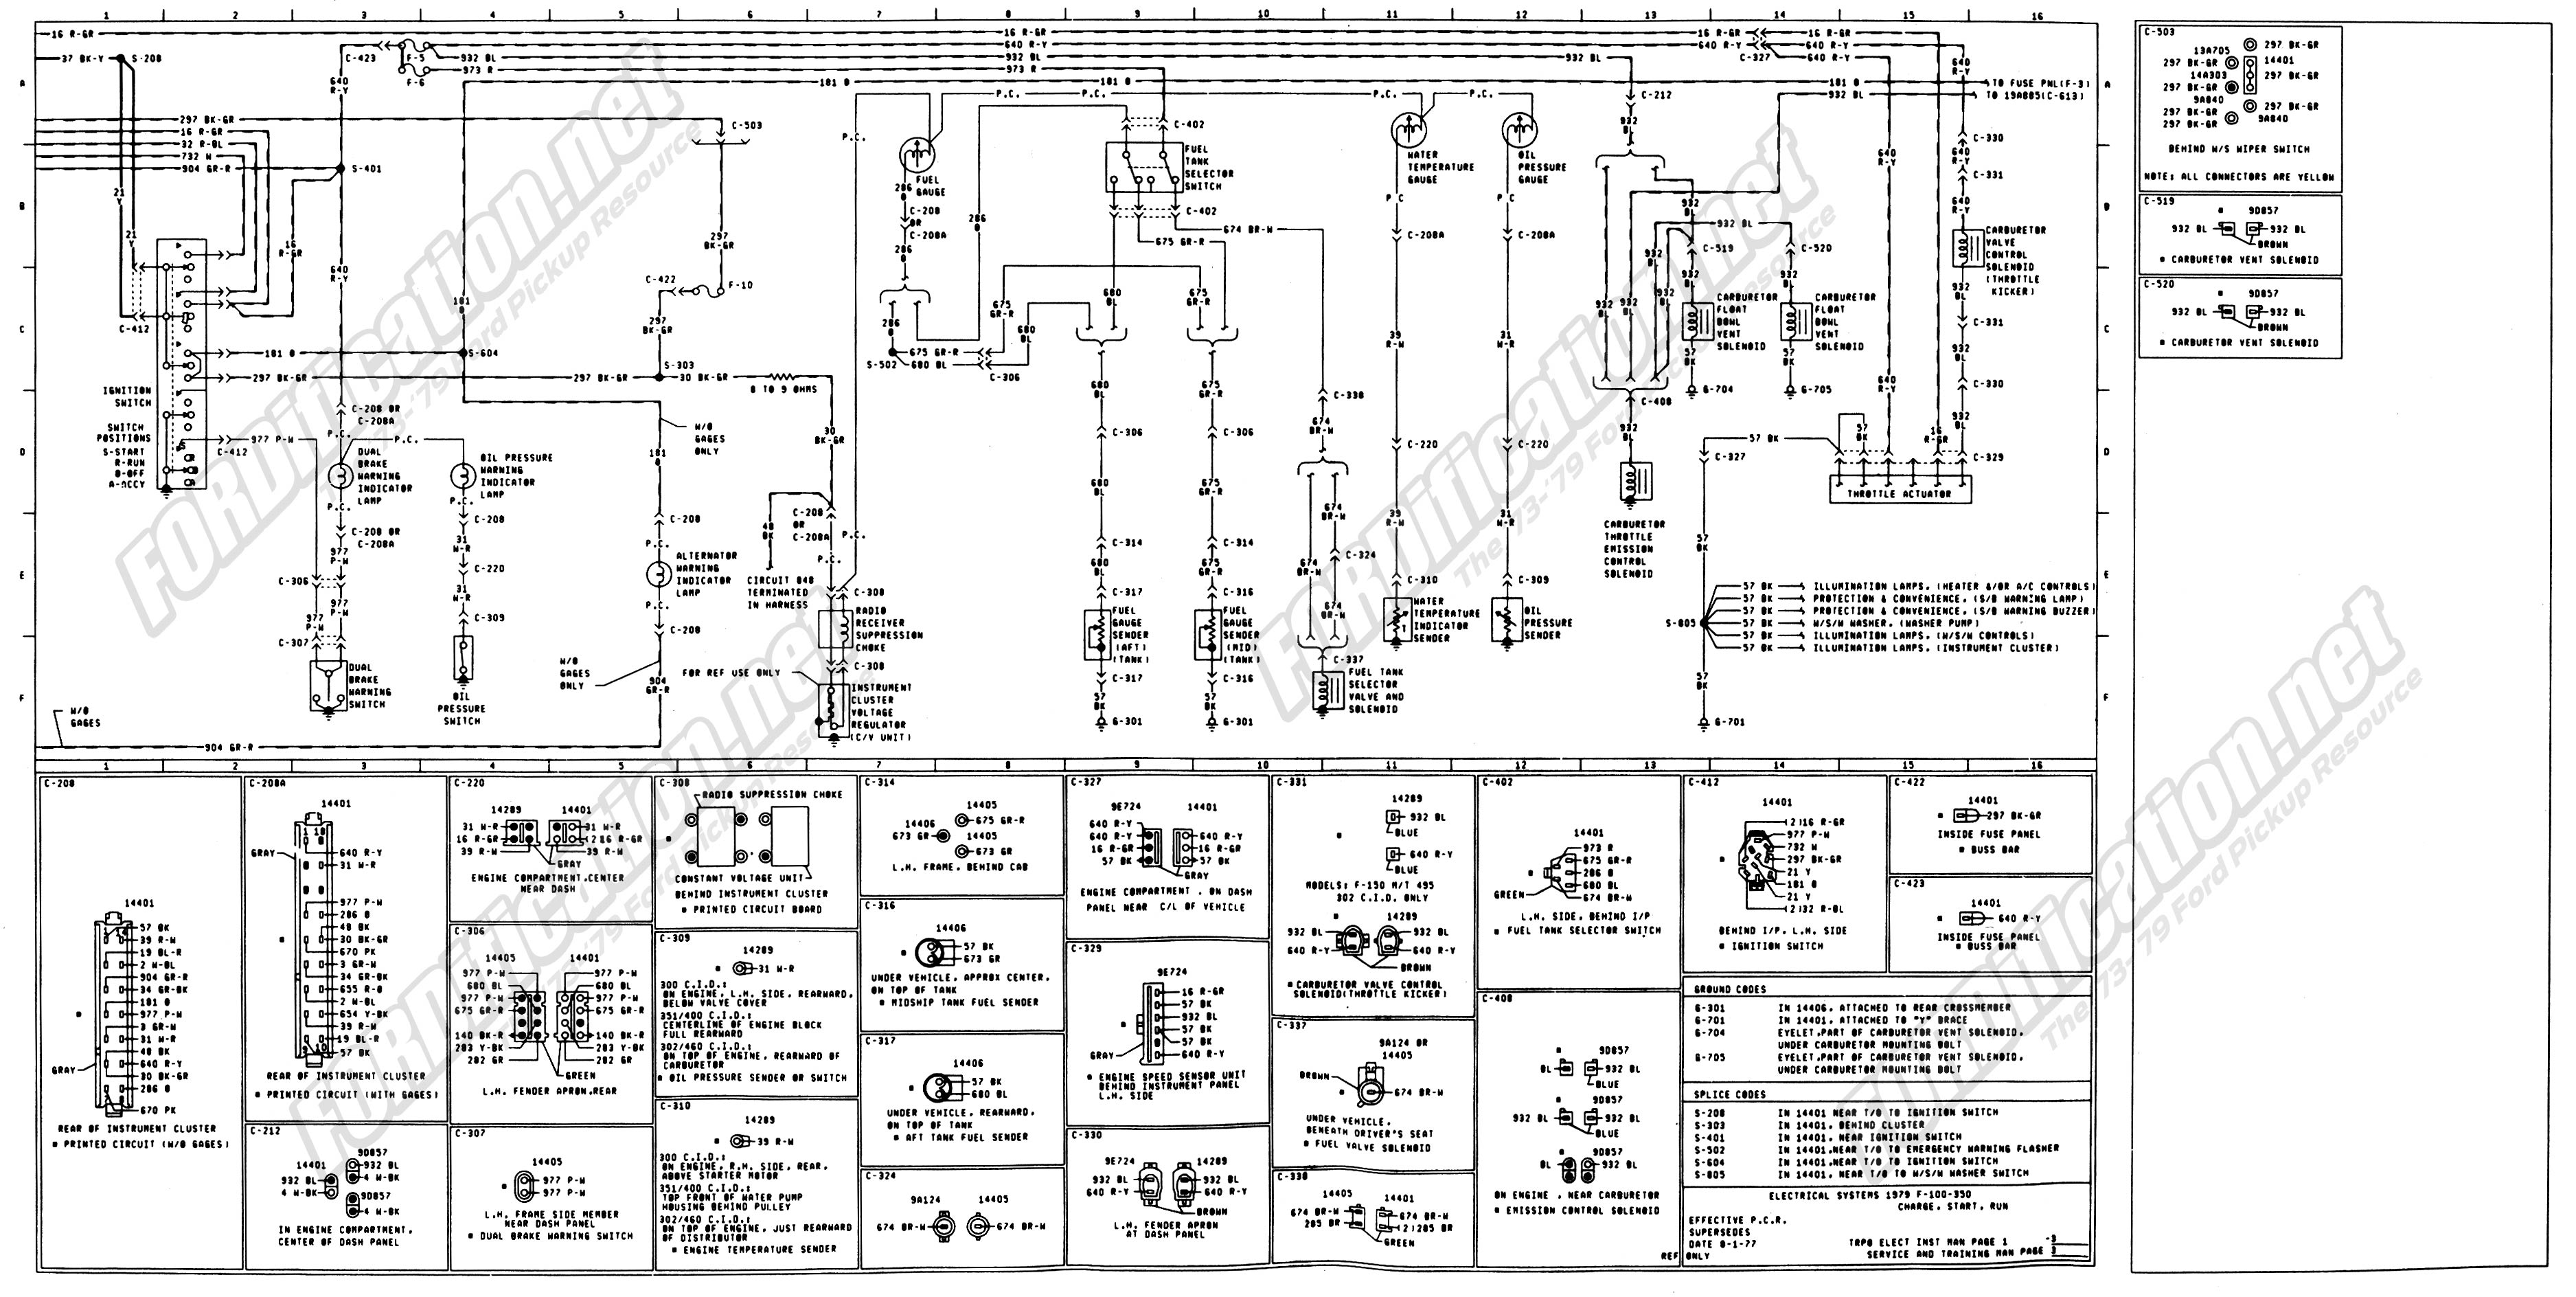 2006 Honda Odyssey Ac Wiring Diagram in addition Discussion T22182 ds657681 furthermore IM9j 8171 also Wiring Diagram 1996 Chevy Vortec 5 7l 37460 moreover Whelen Light Bar Wiring Diagram. on 2008 dodge ram trailer wiring diagram